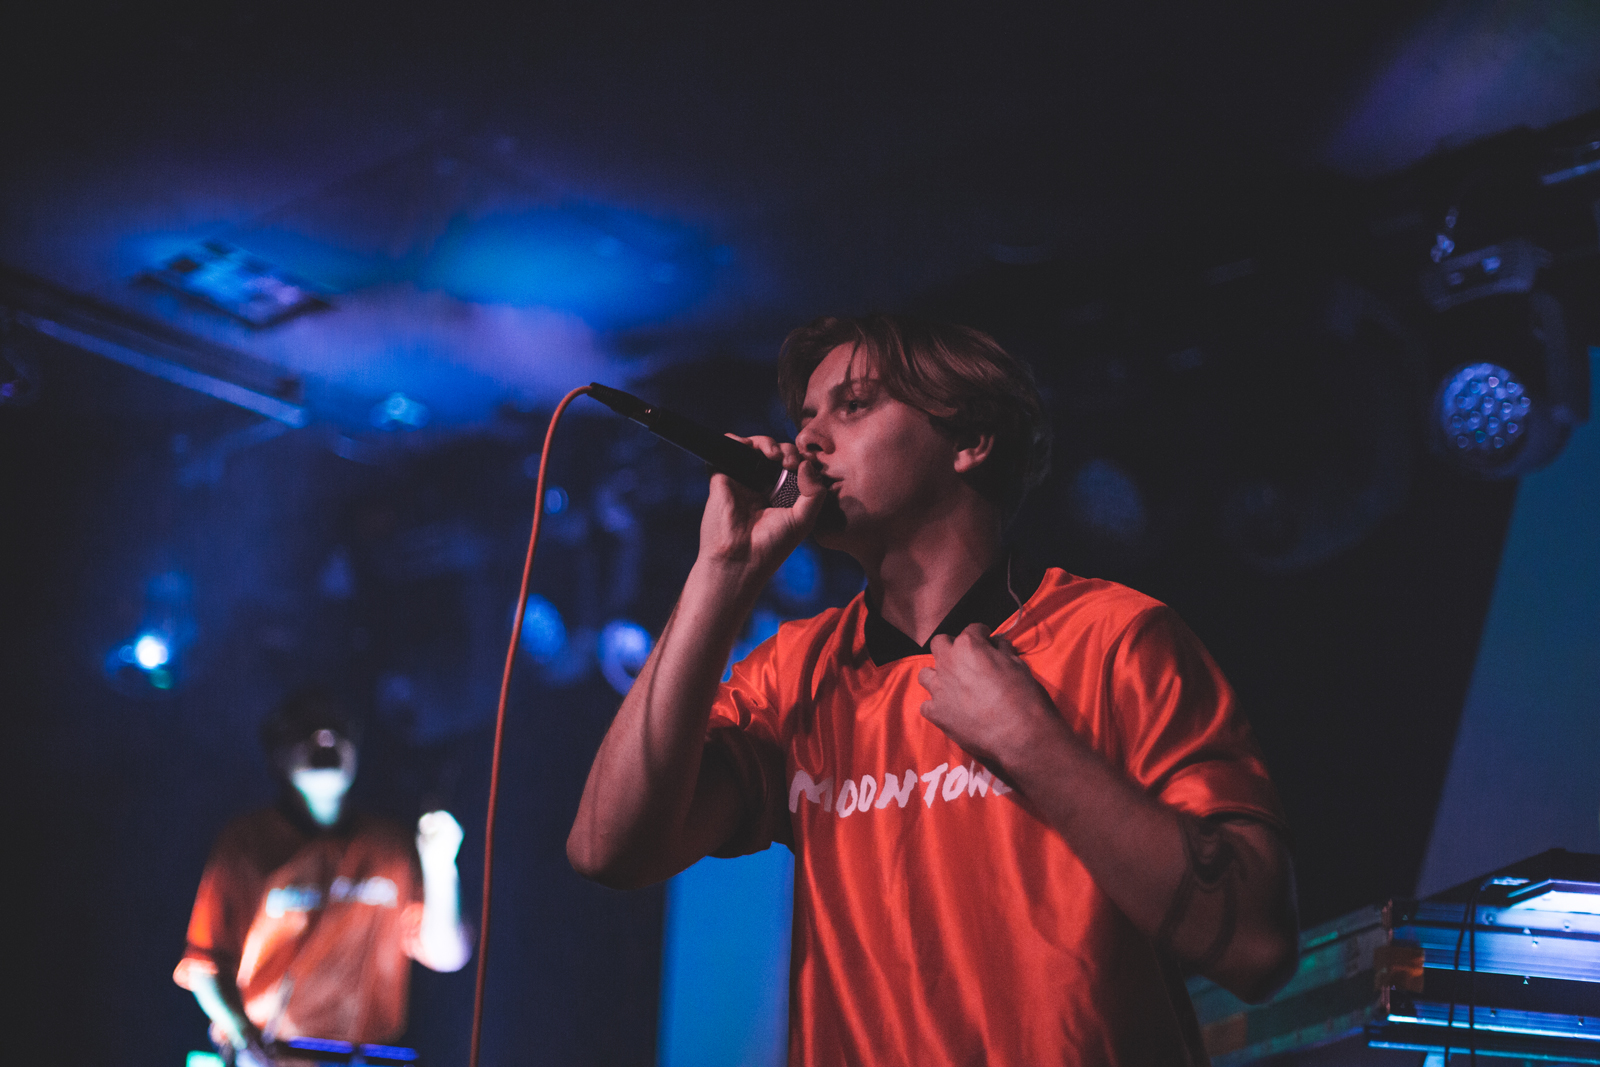 Jacob on vocals at The Moroccan Lounge, September 26, 2018